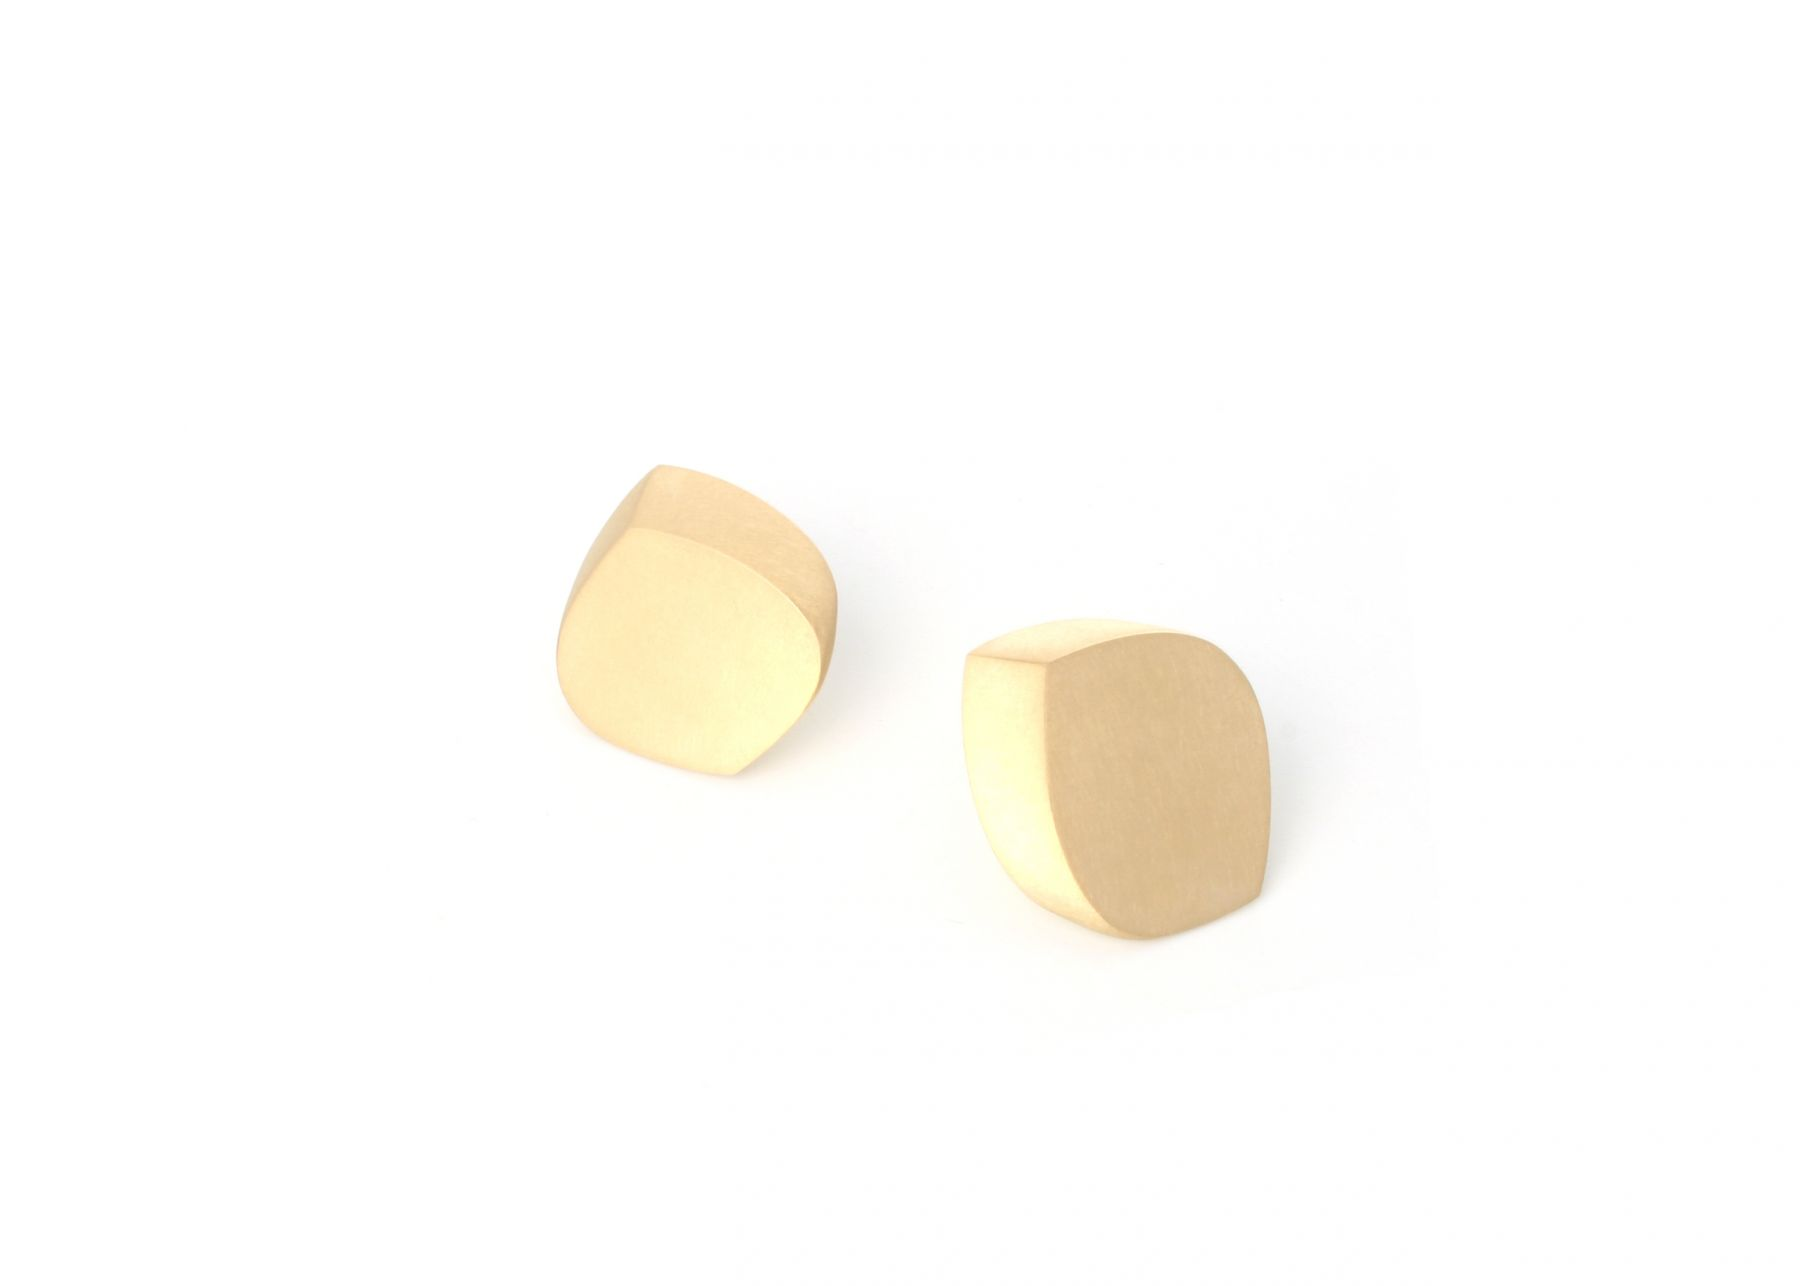 Chavent gold earrings, perspective